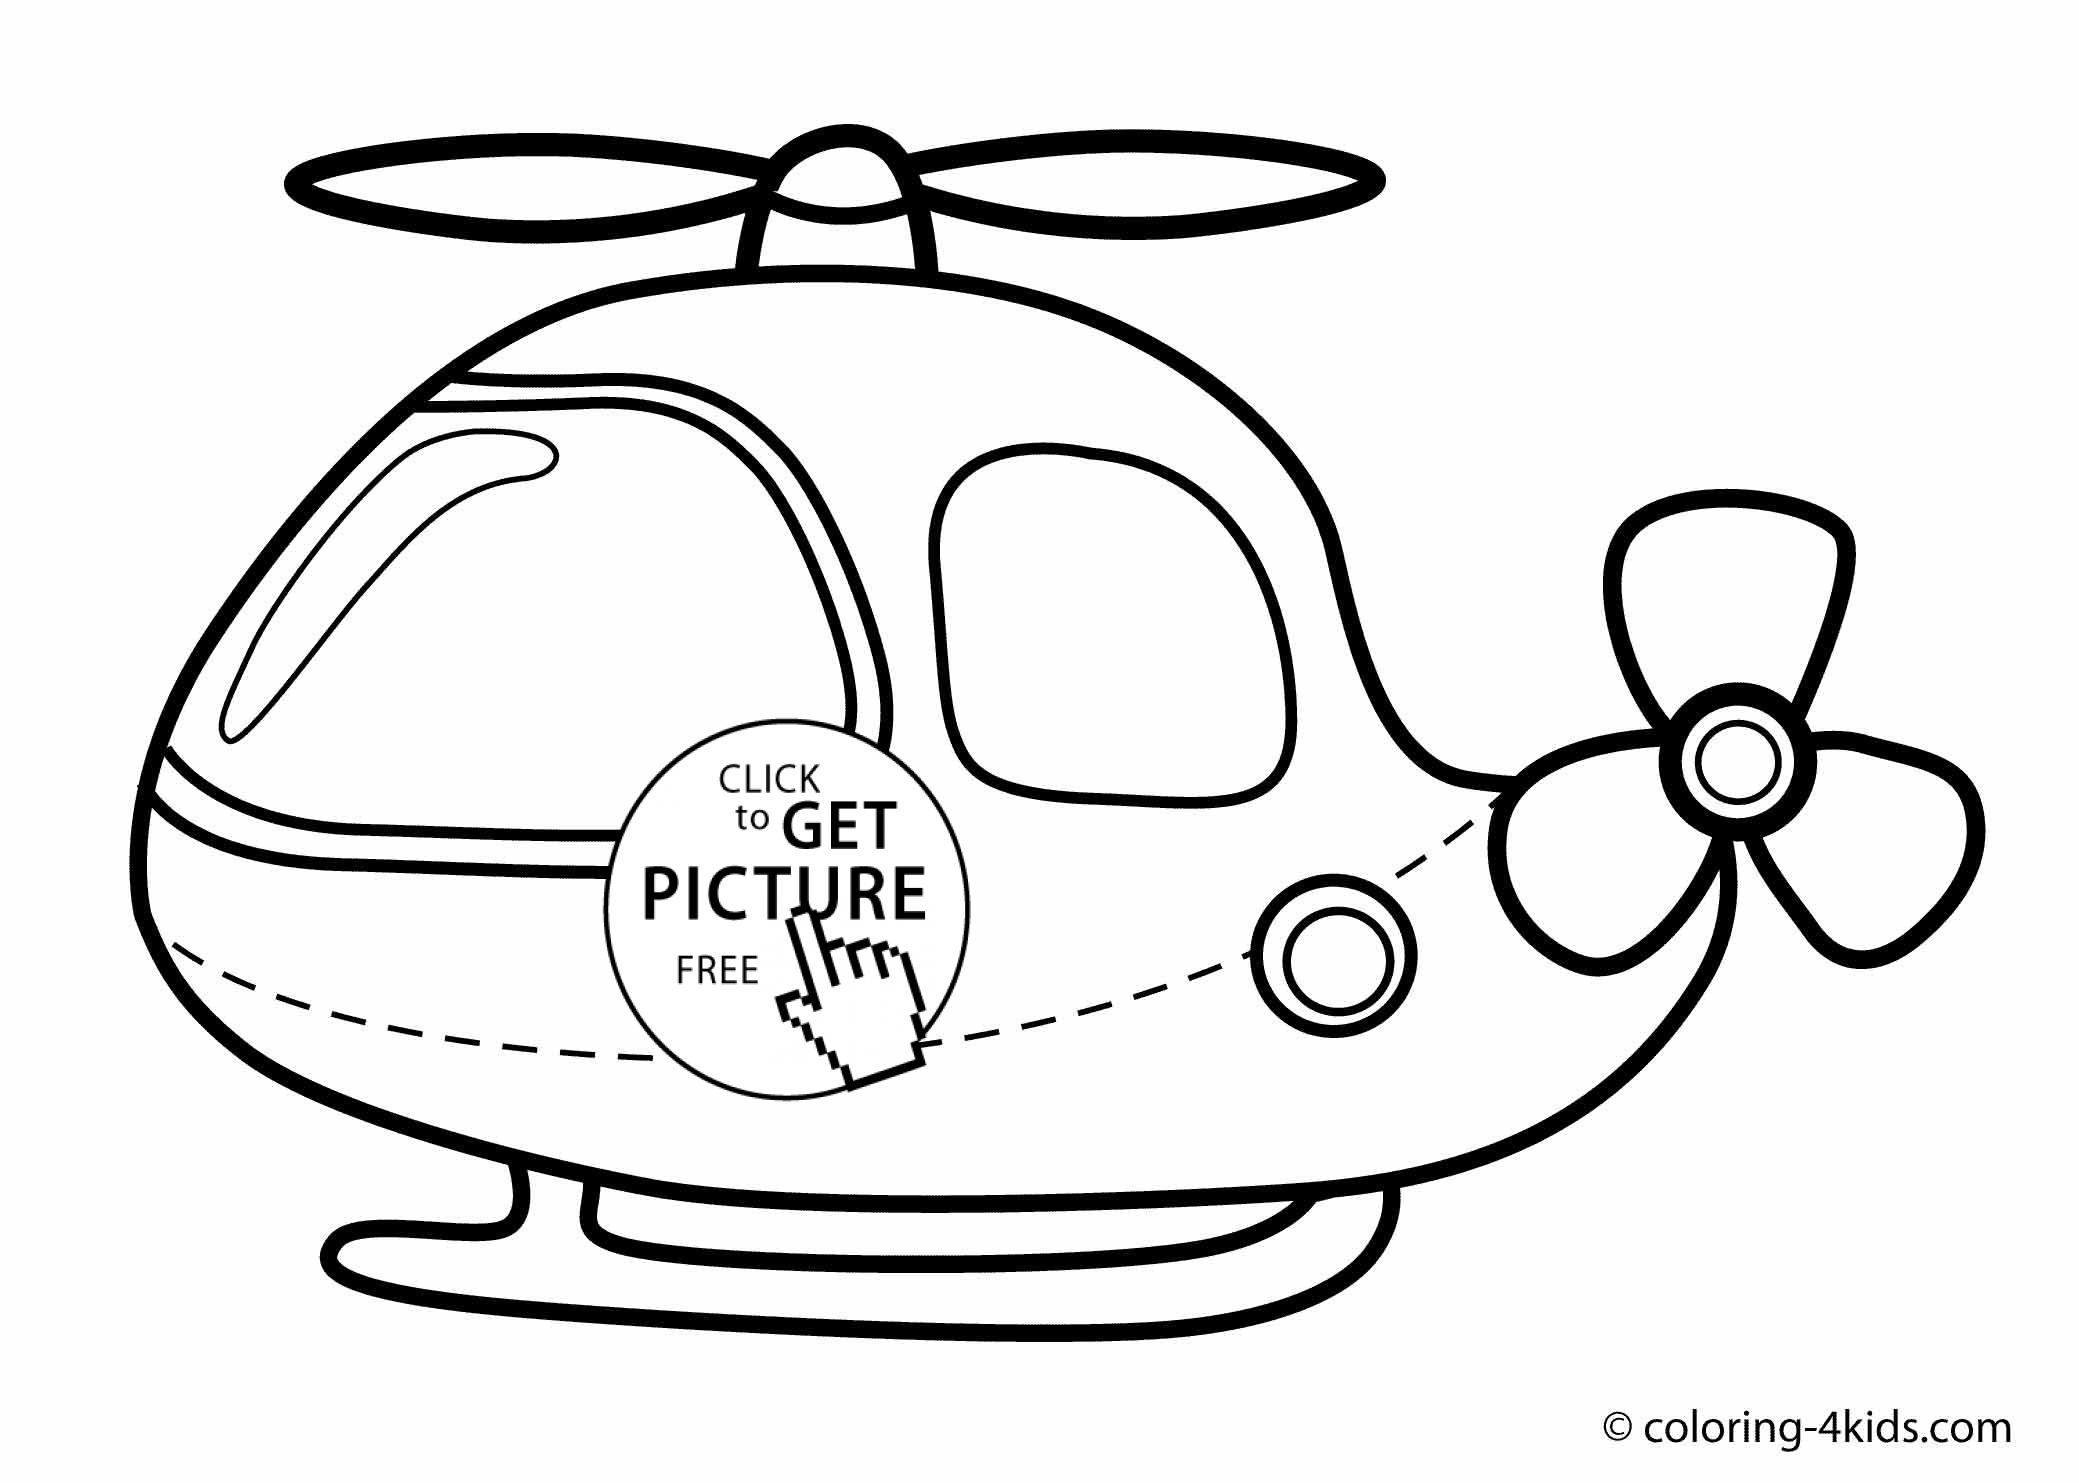 helicopter coloring page for kids printable free helicopter coloring books - Color Book Pages